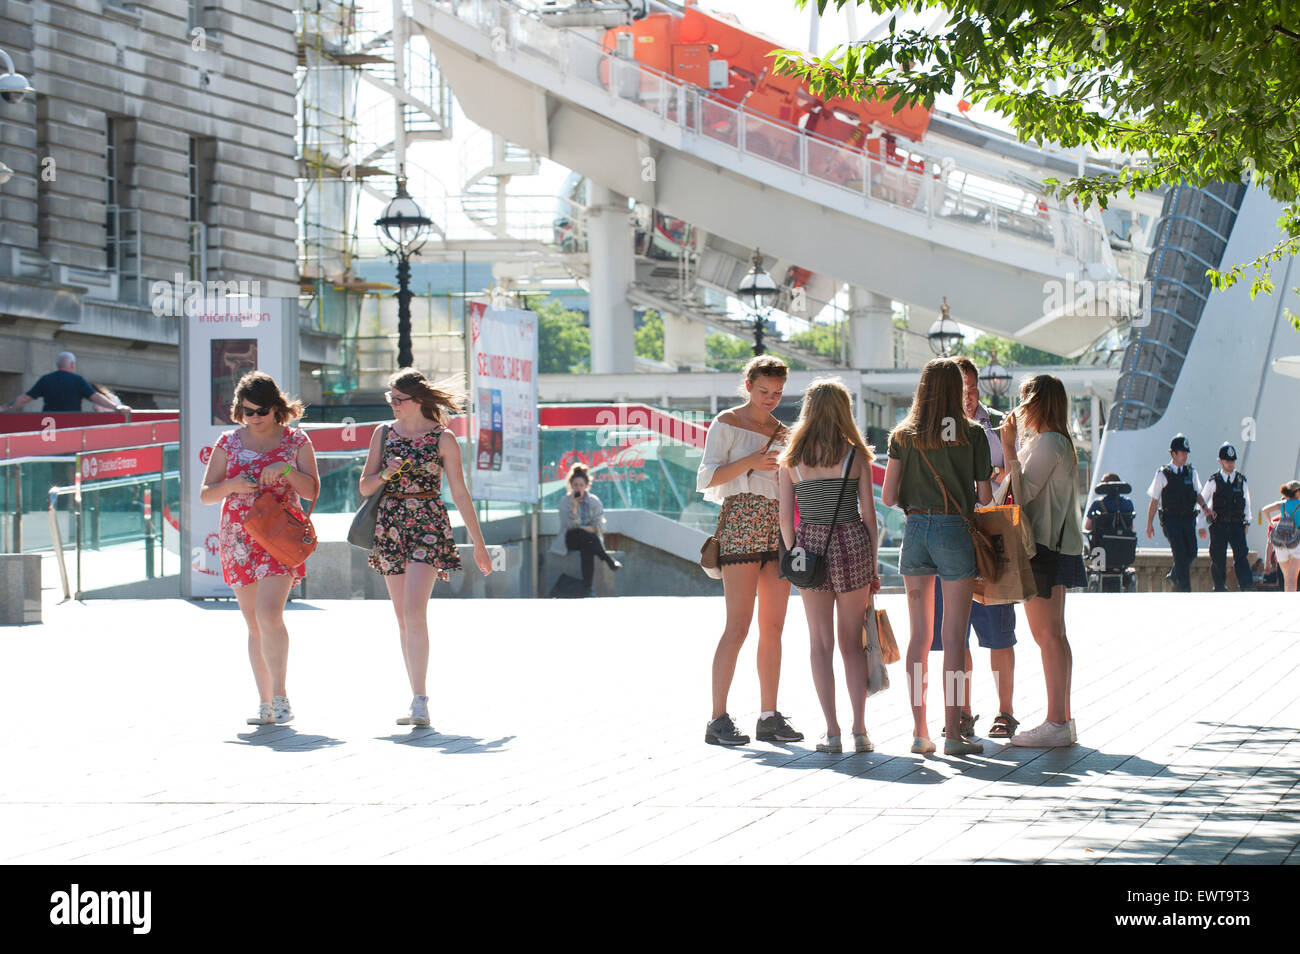 London, UK. 30th June 2015. People on the South Bank are dressed for the heatwave as Londoners experience a beautiful - Stock Image